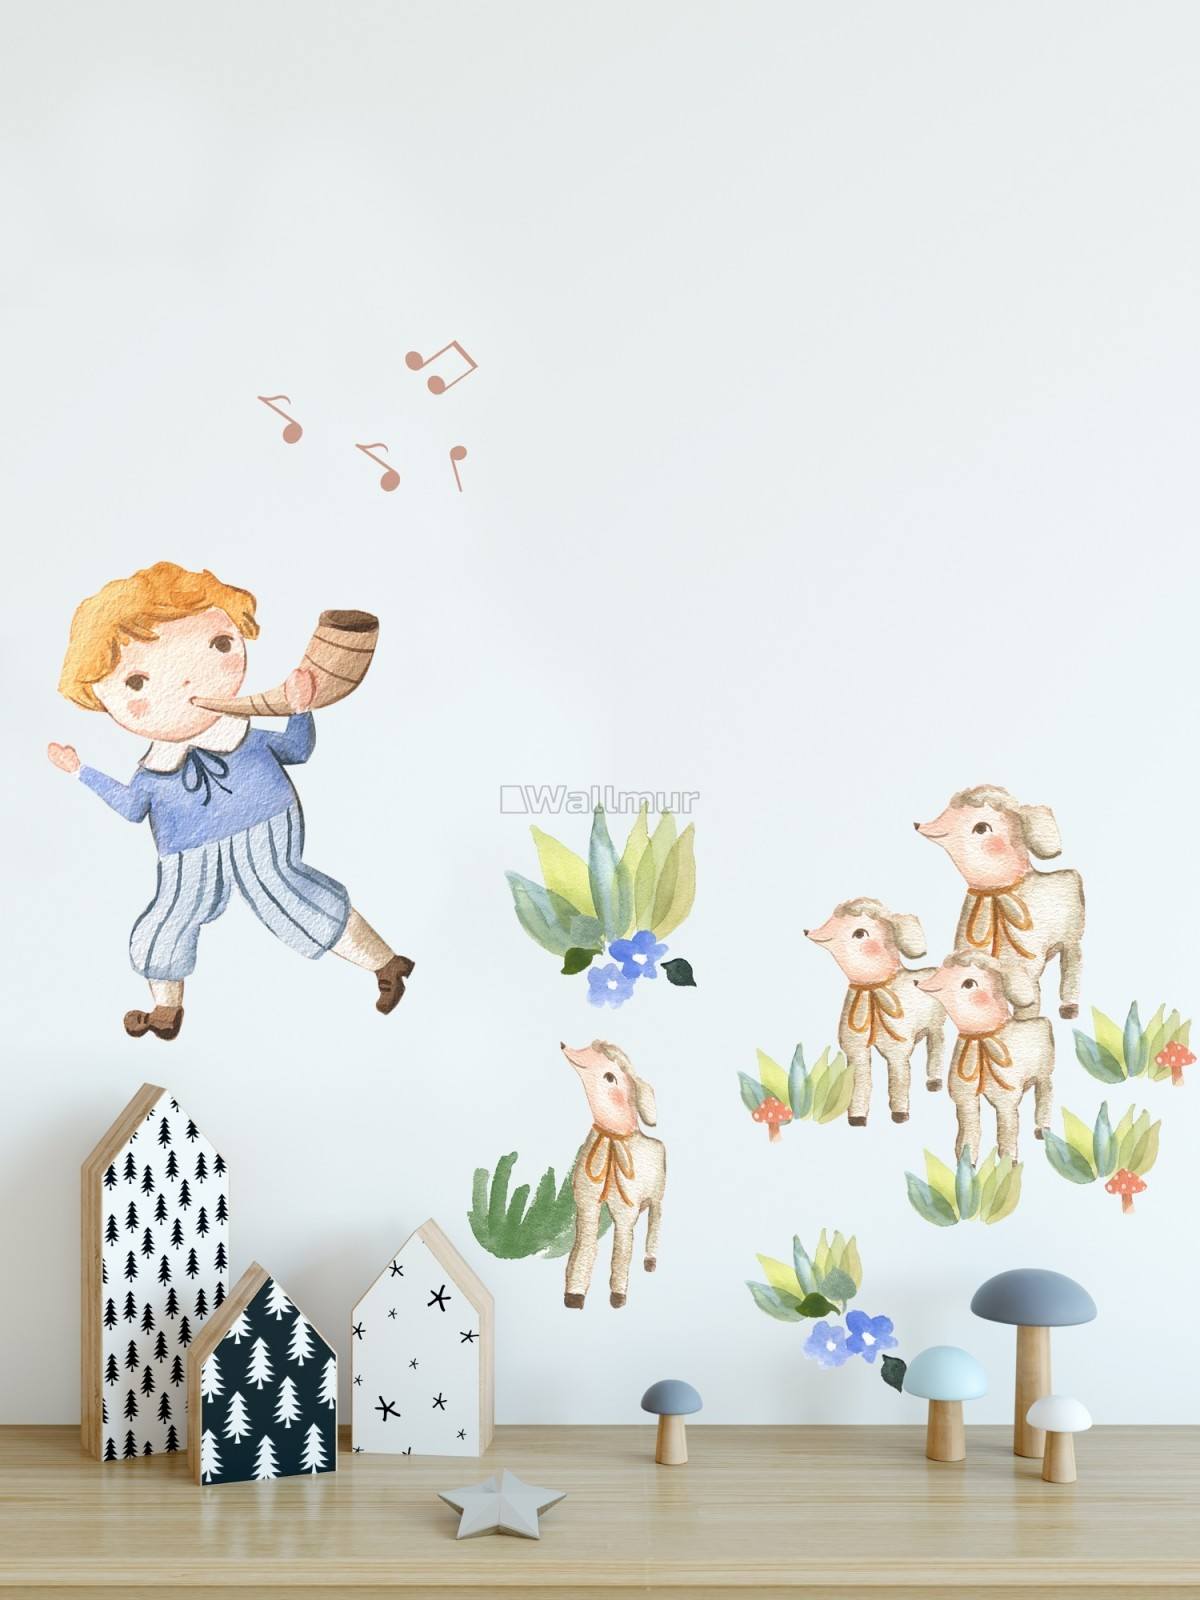 Kids Little Boys and Cute Sheeps Wall Decal Sticker